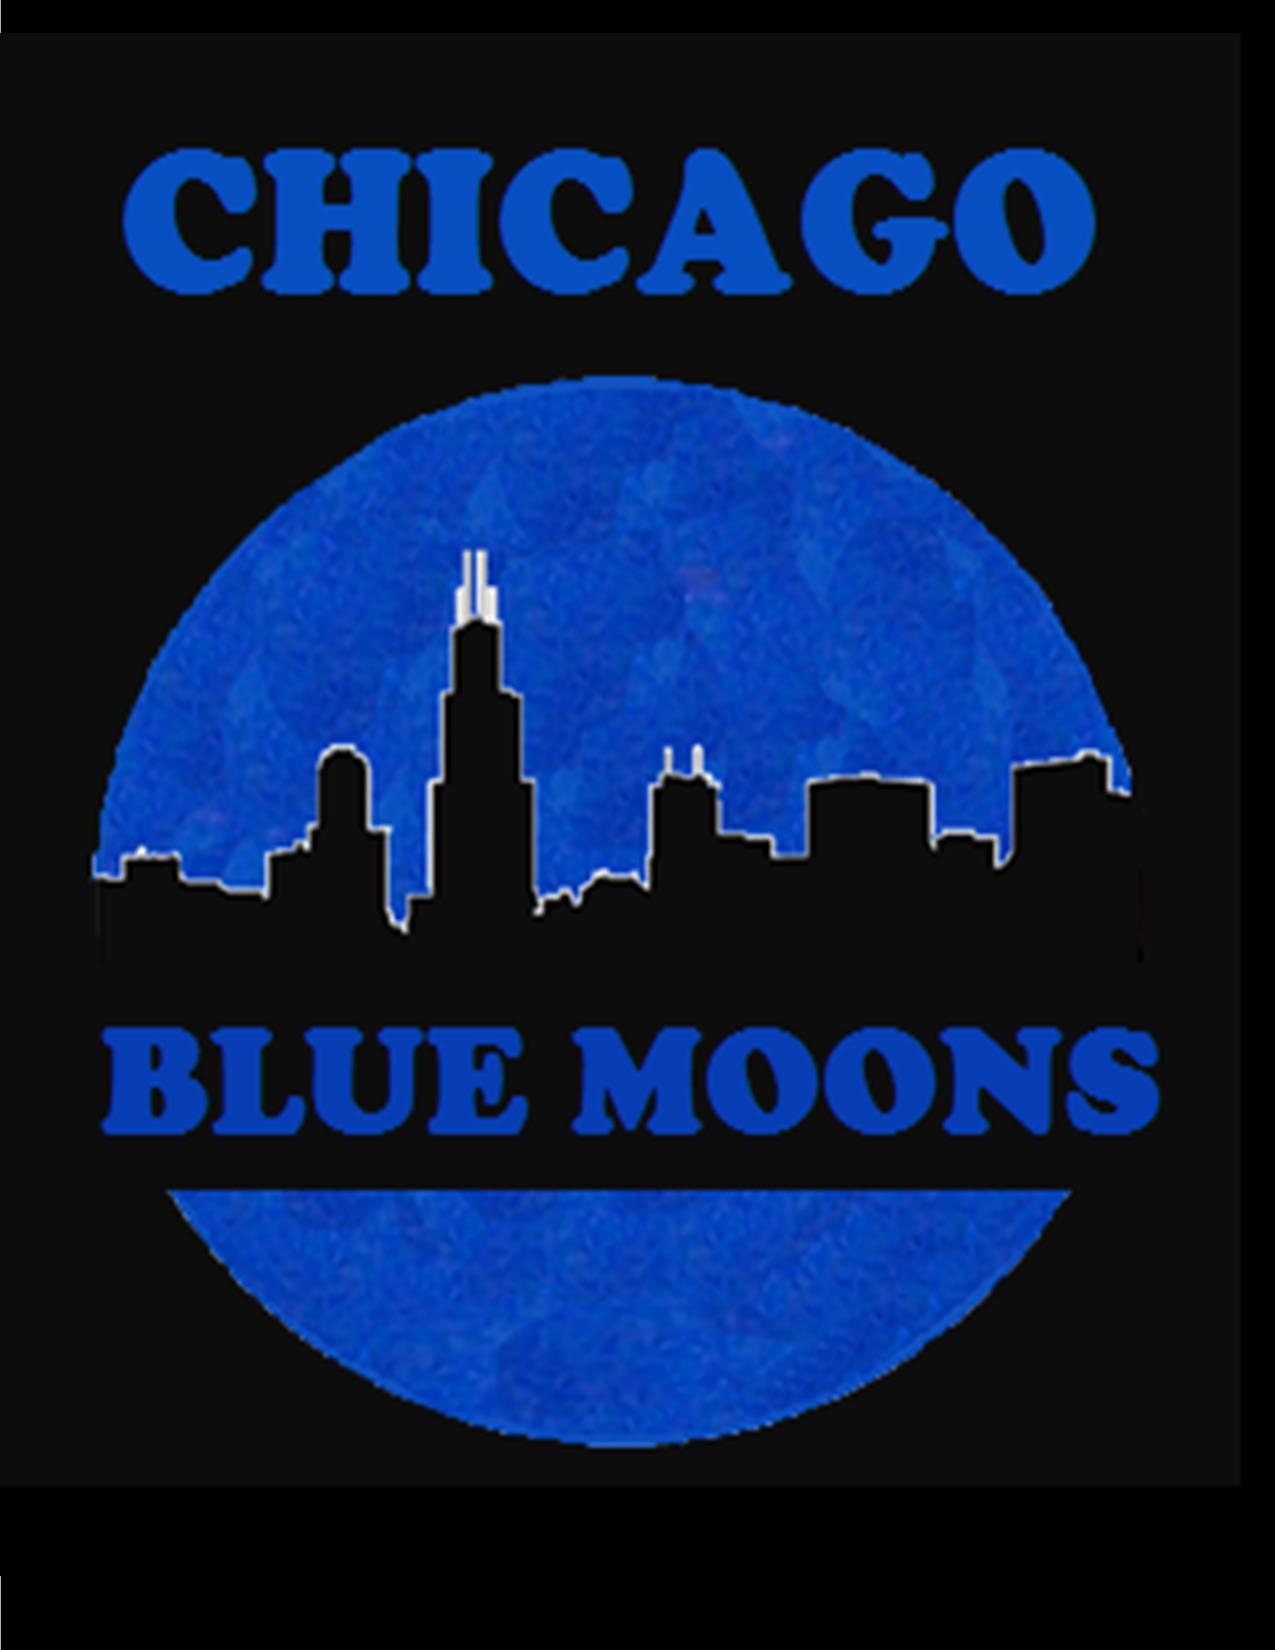 Chicago Blue Moons